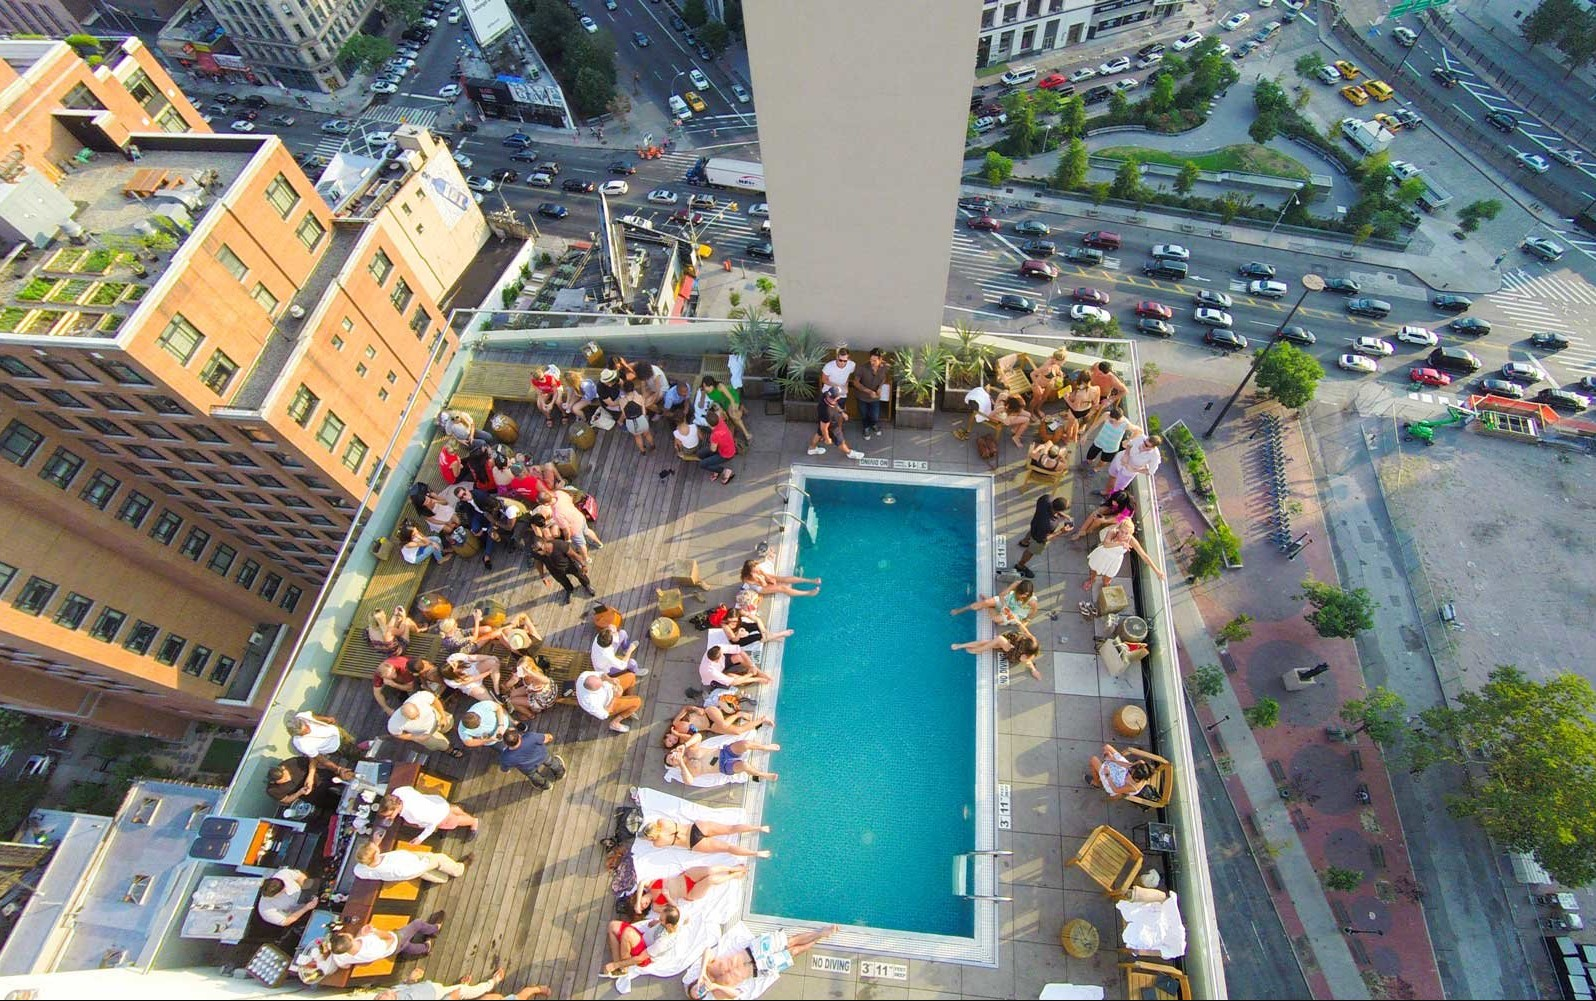 Aerial shot of pool party on a rooftop bar